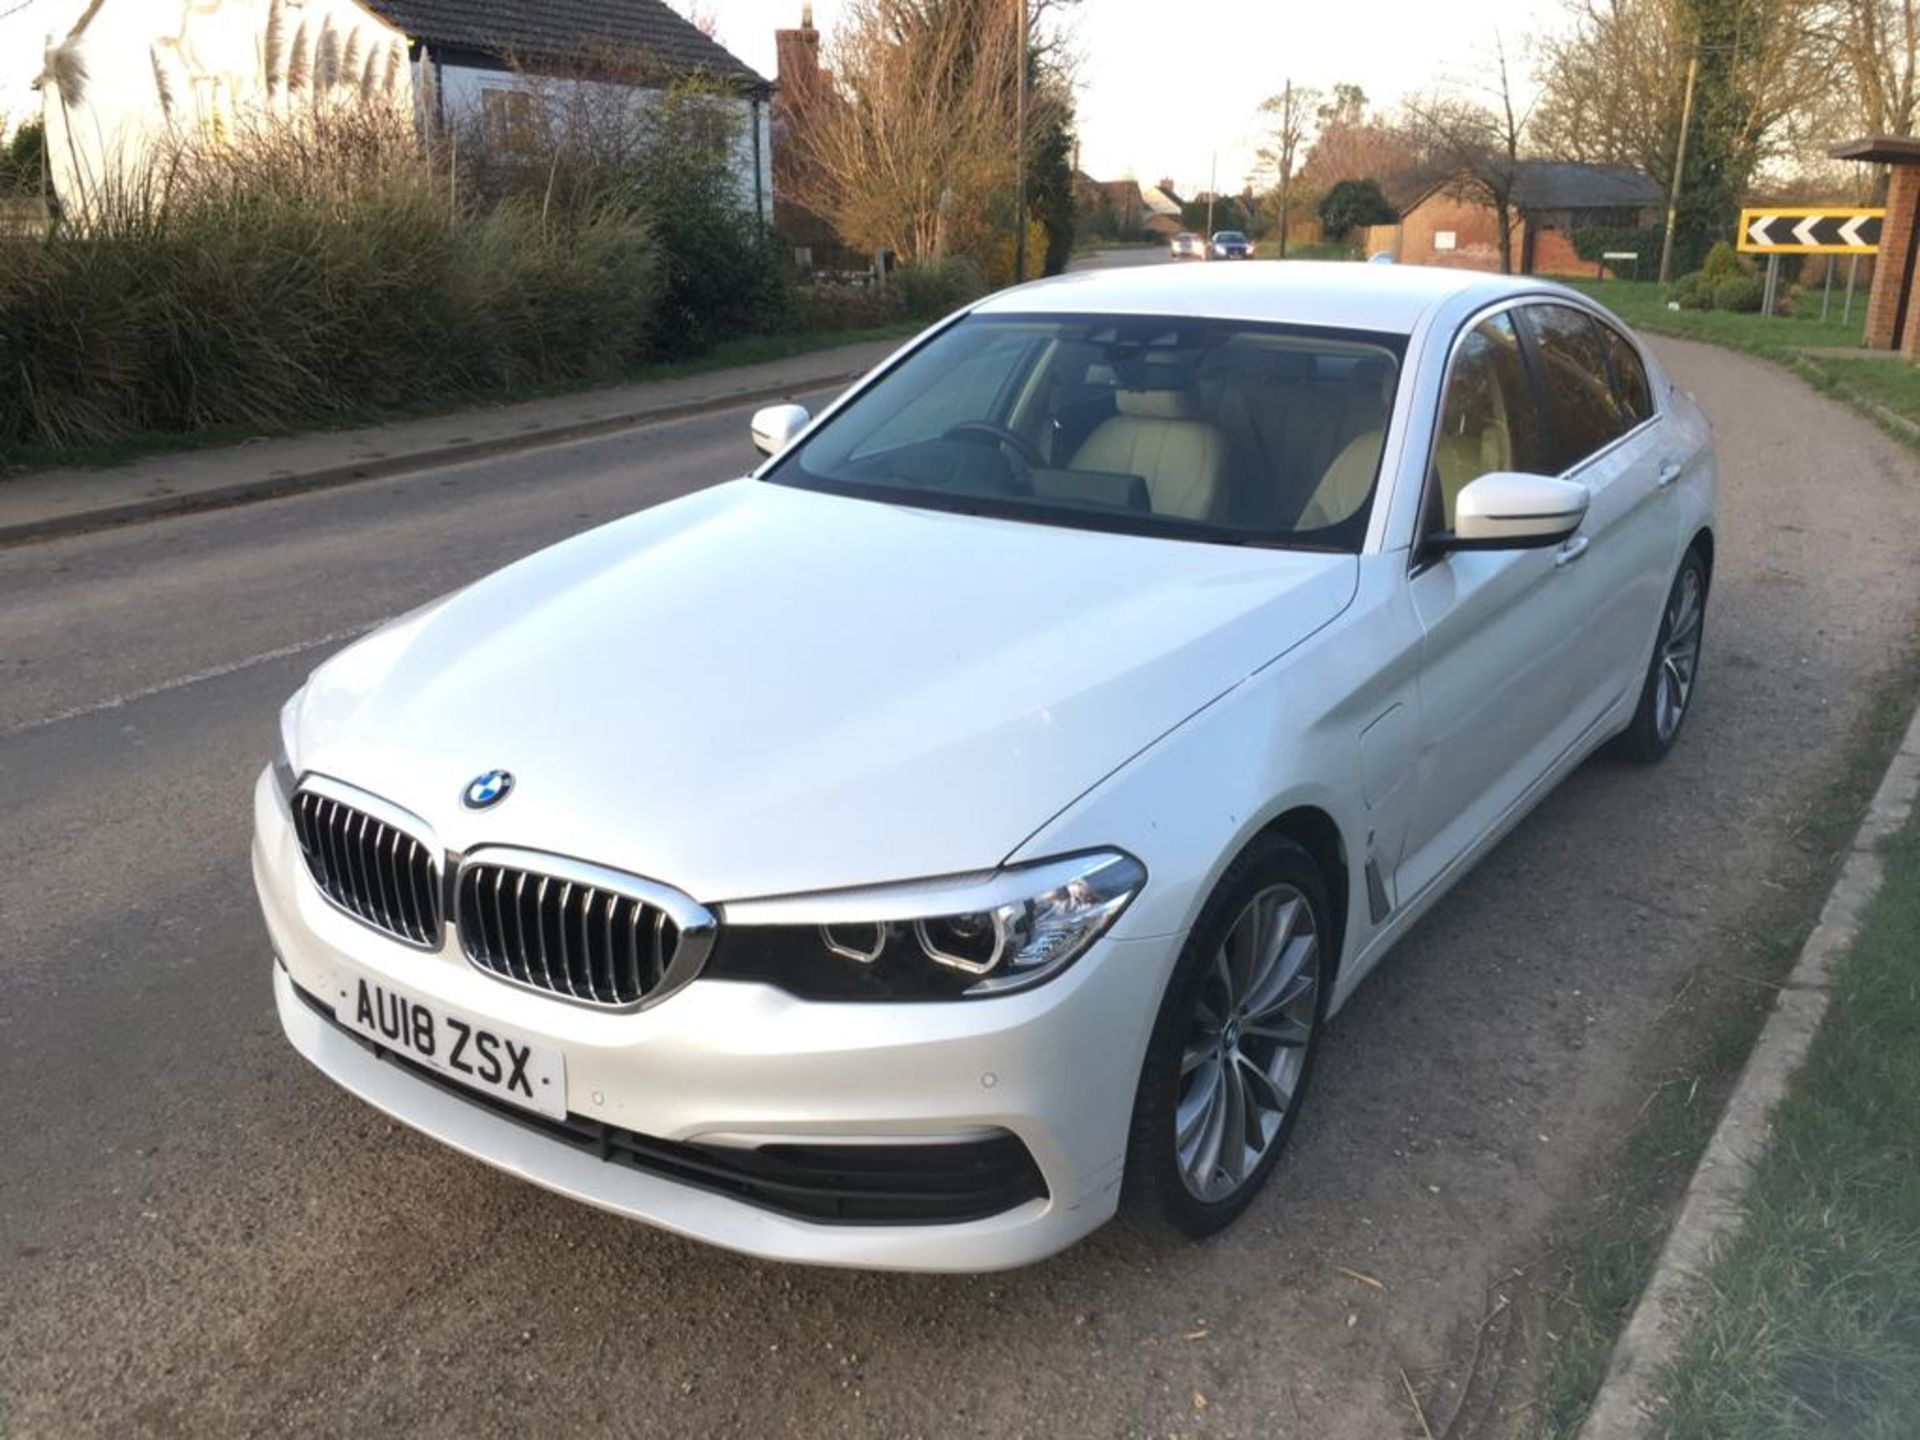 2018 BMW 530E 2.0 SE HYBIRD SALOON AUTOMATIC - Image 5 of 34